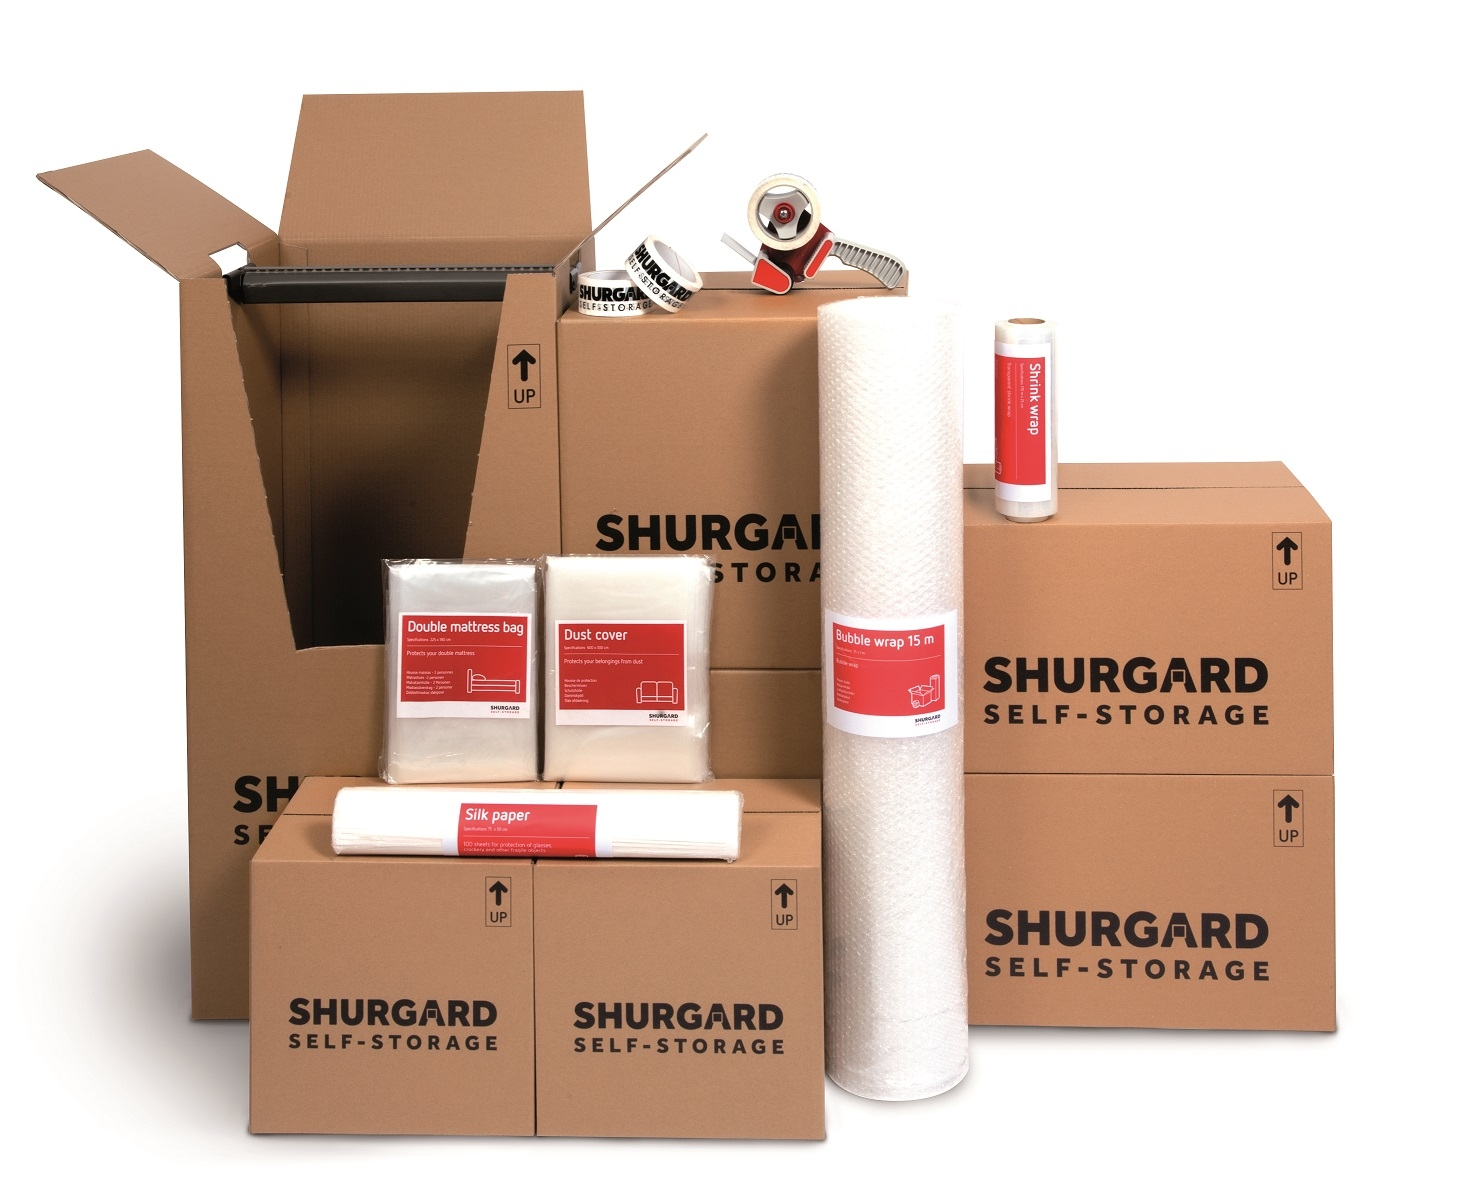 Shurgard Self-Storage Hvidovre